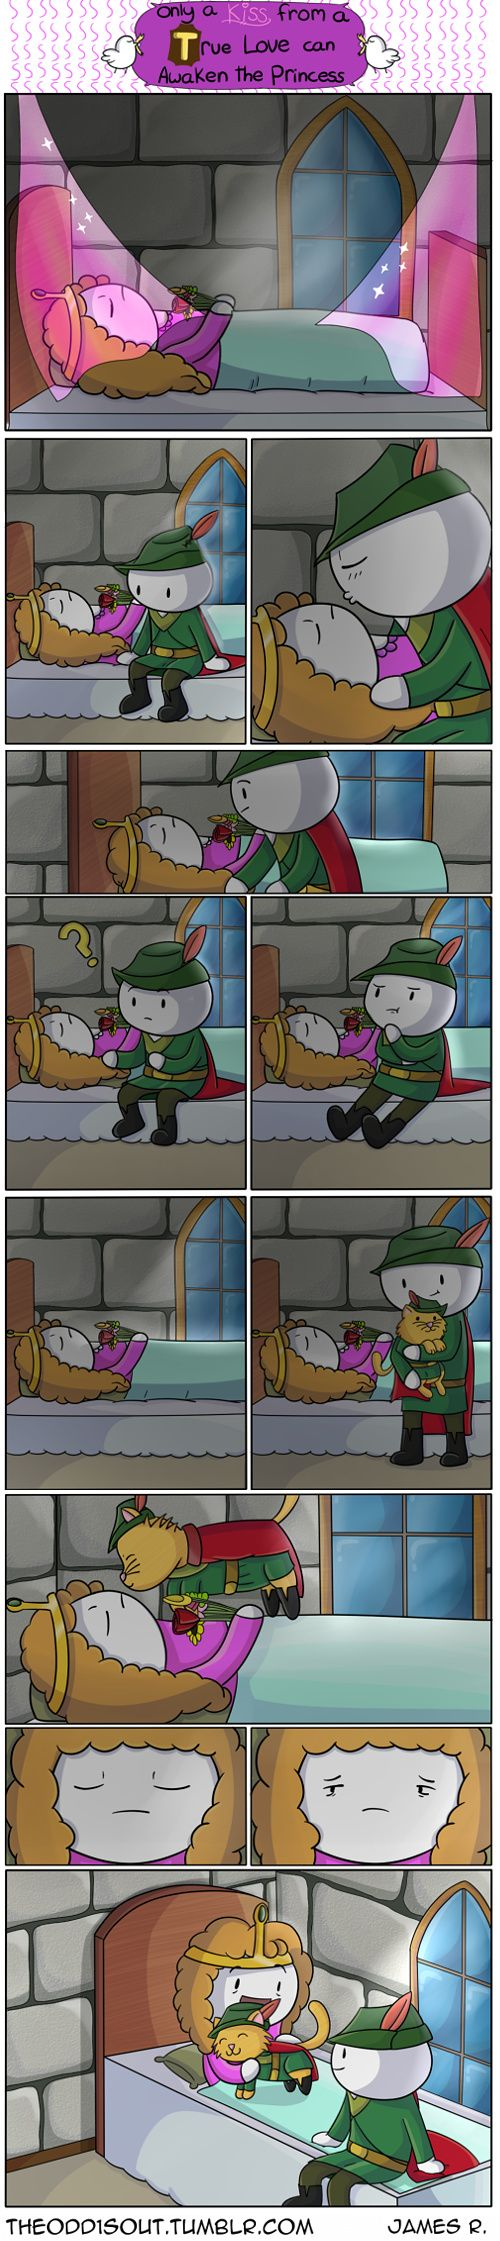 Check out the comic Theodd1sout :: A True loves kiss